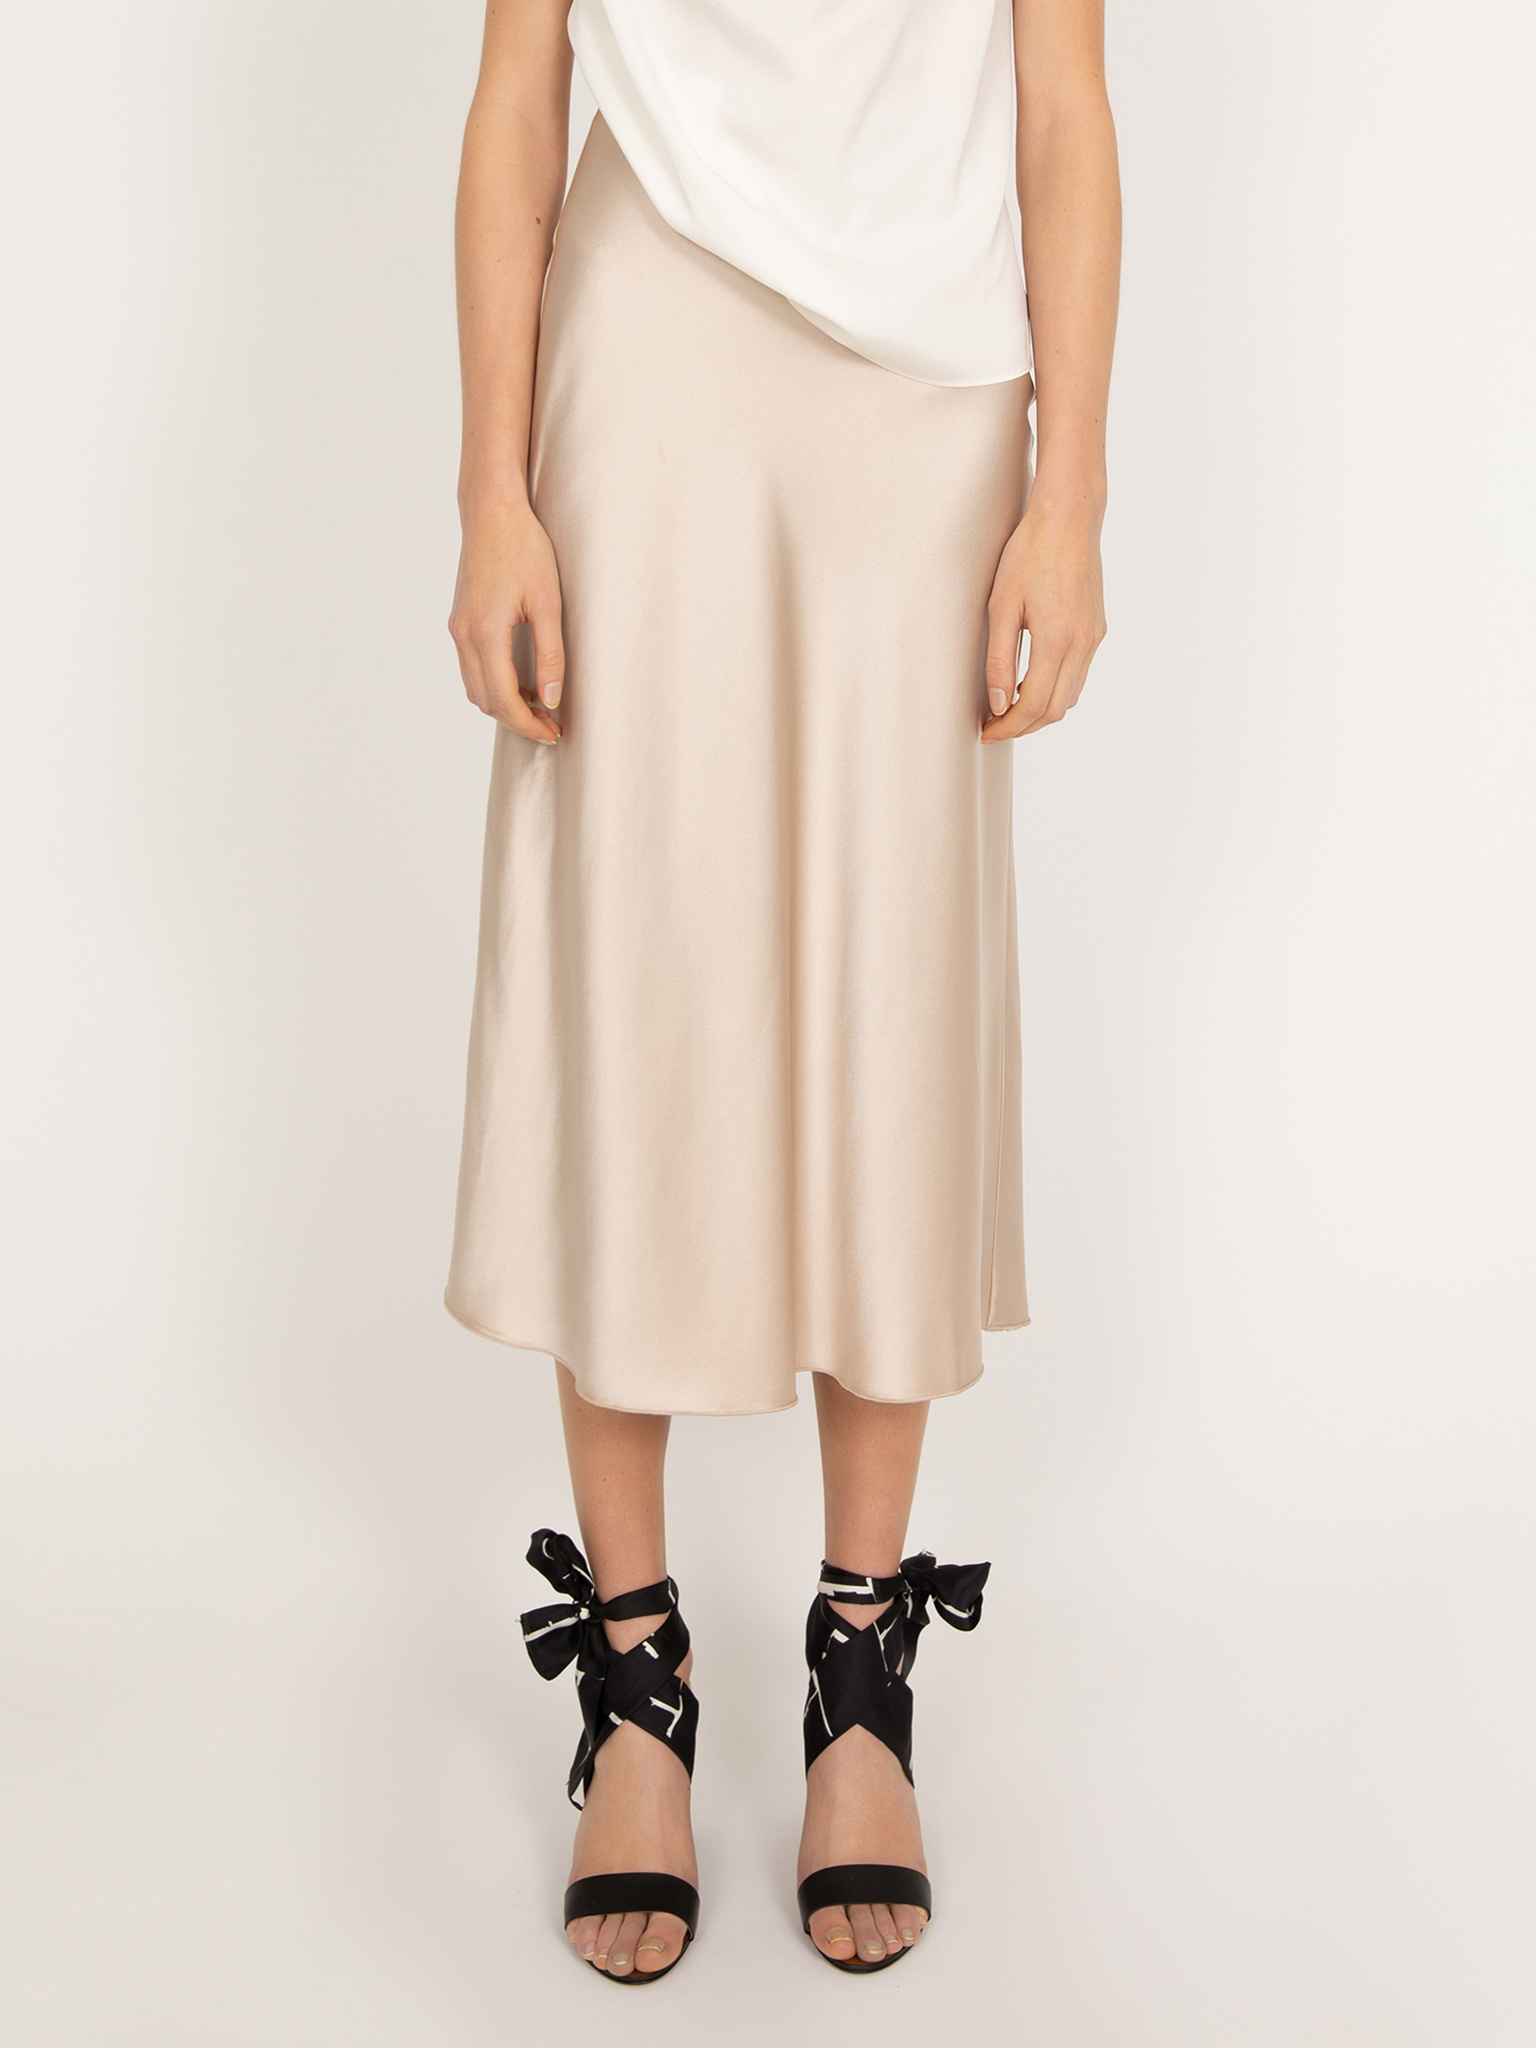 Hana satin skirt - Ahlvar